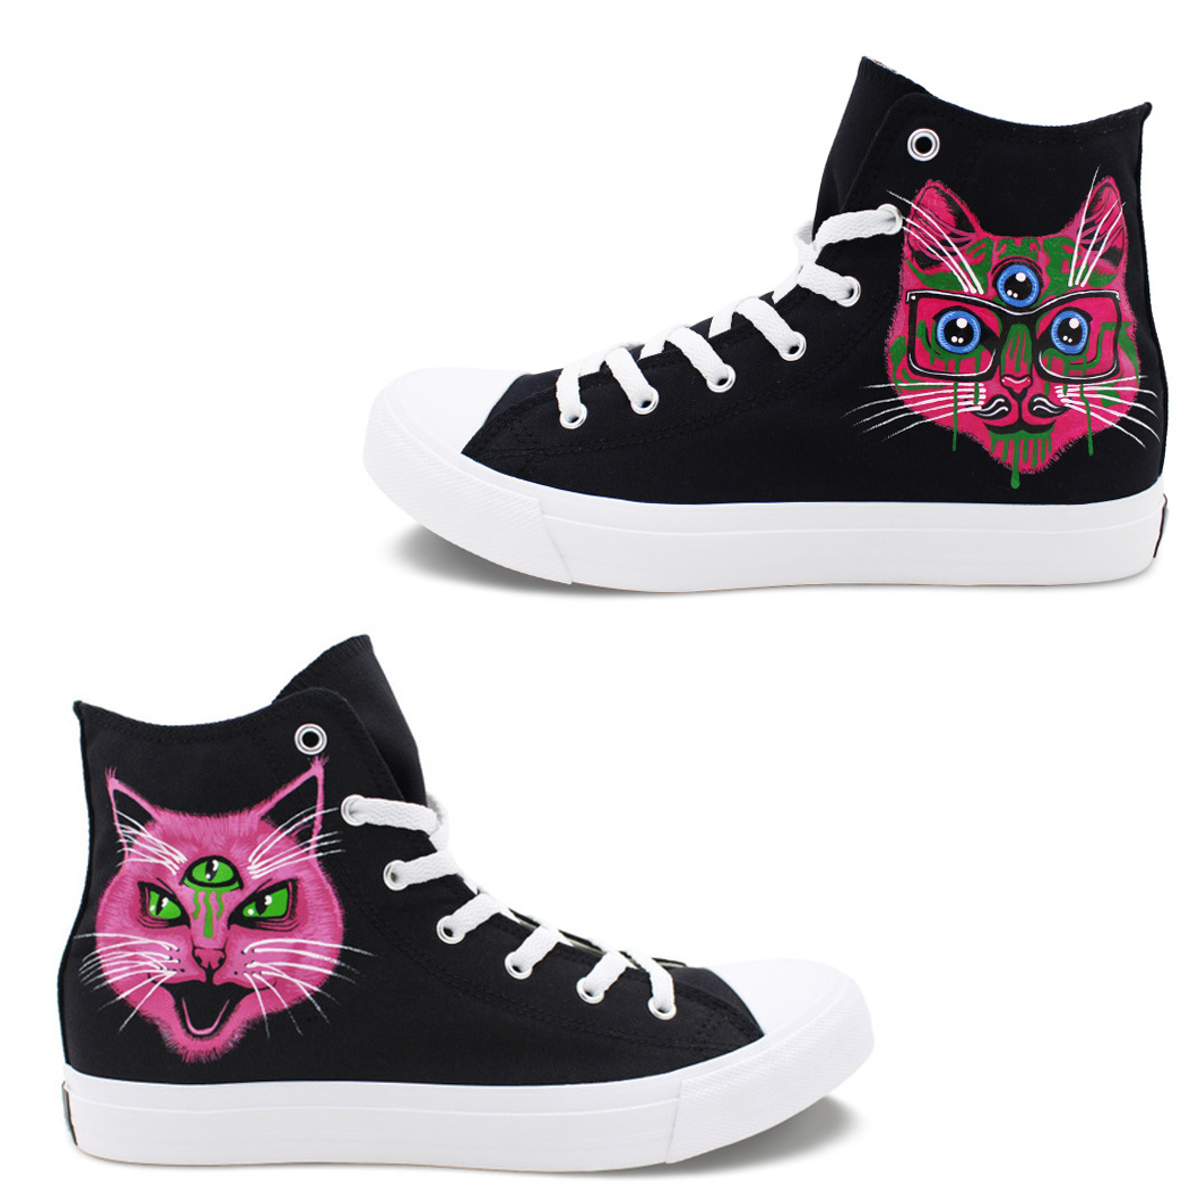 Wen's  Custom Hand Painted 3 Eyed Cat  Women's  Canvas Sneakers